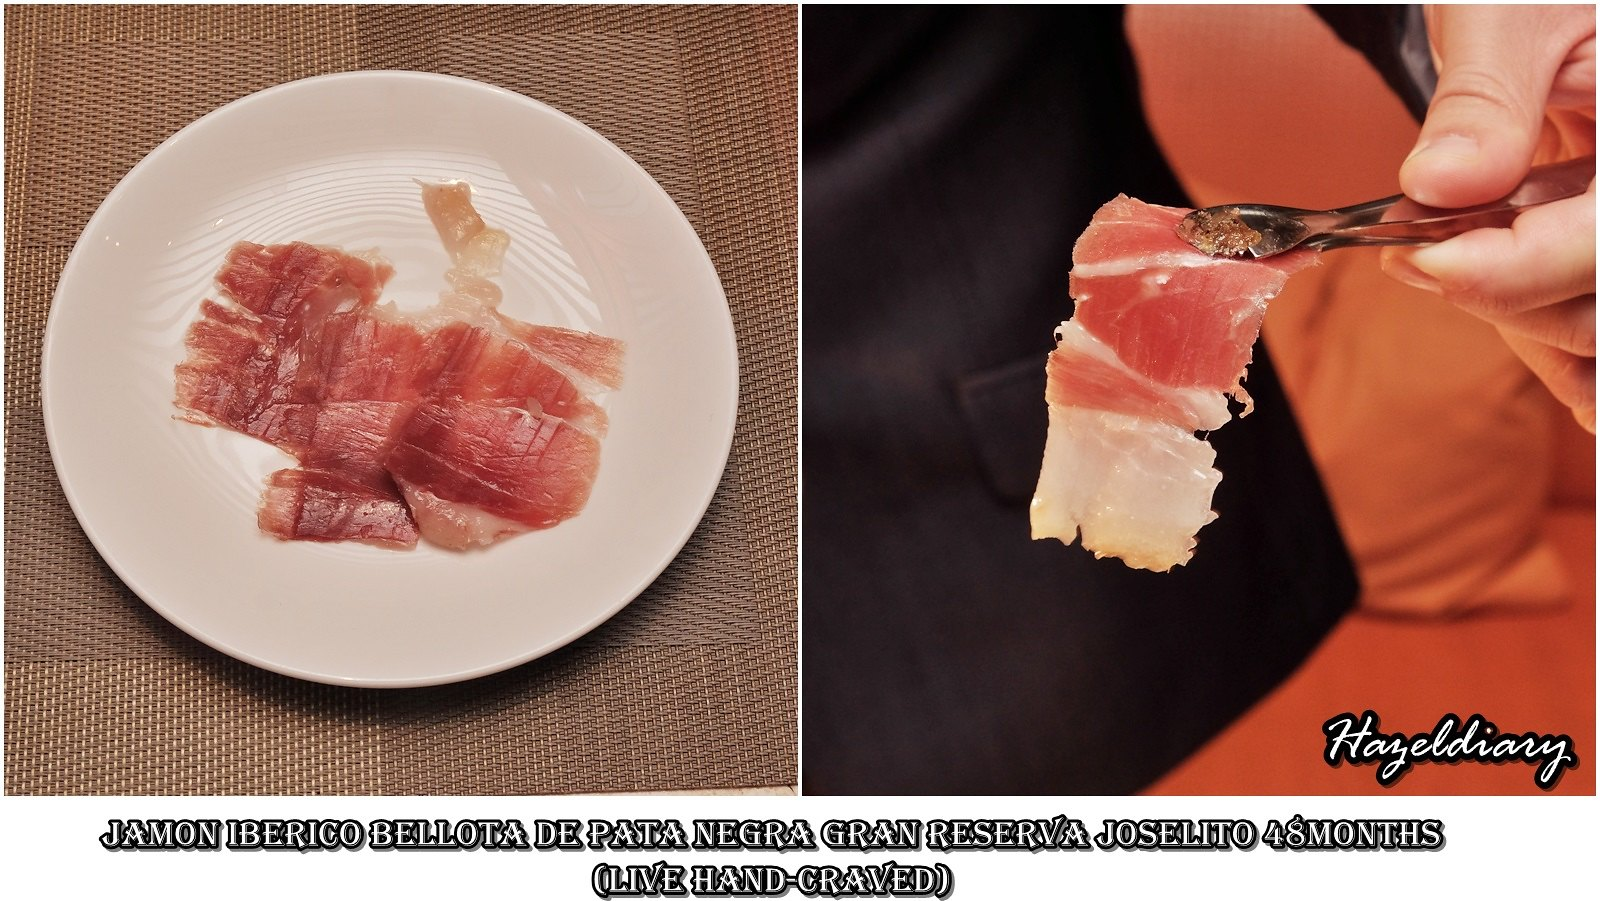 Capella The Knolls-Spanish Gourmet-Jamon Iberico-Hazeldiary